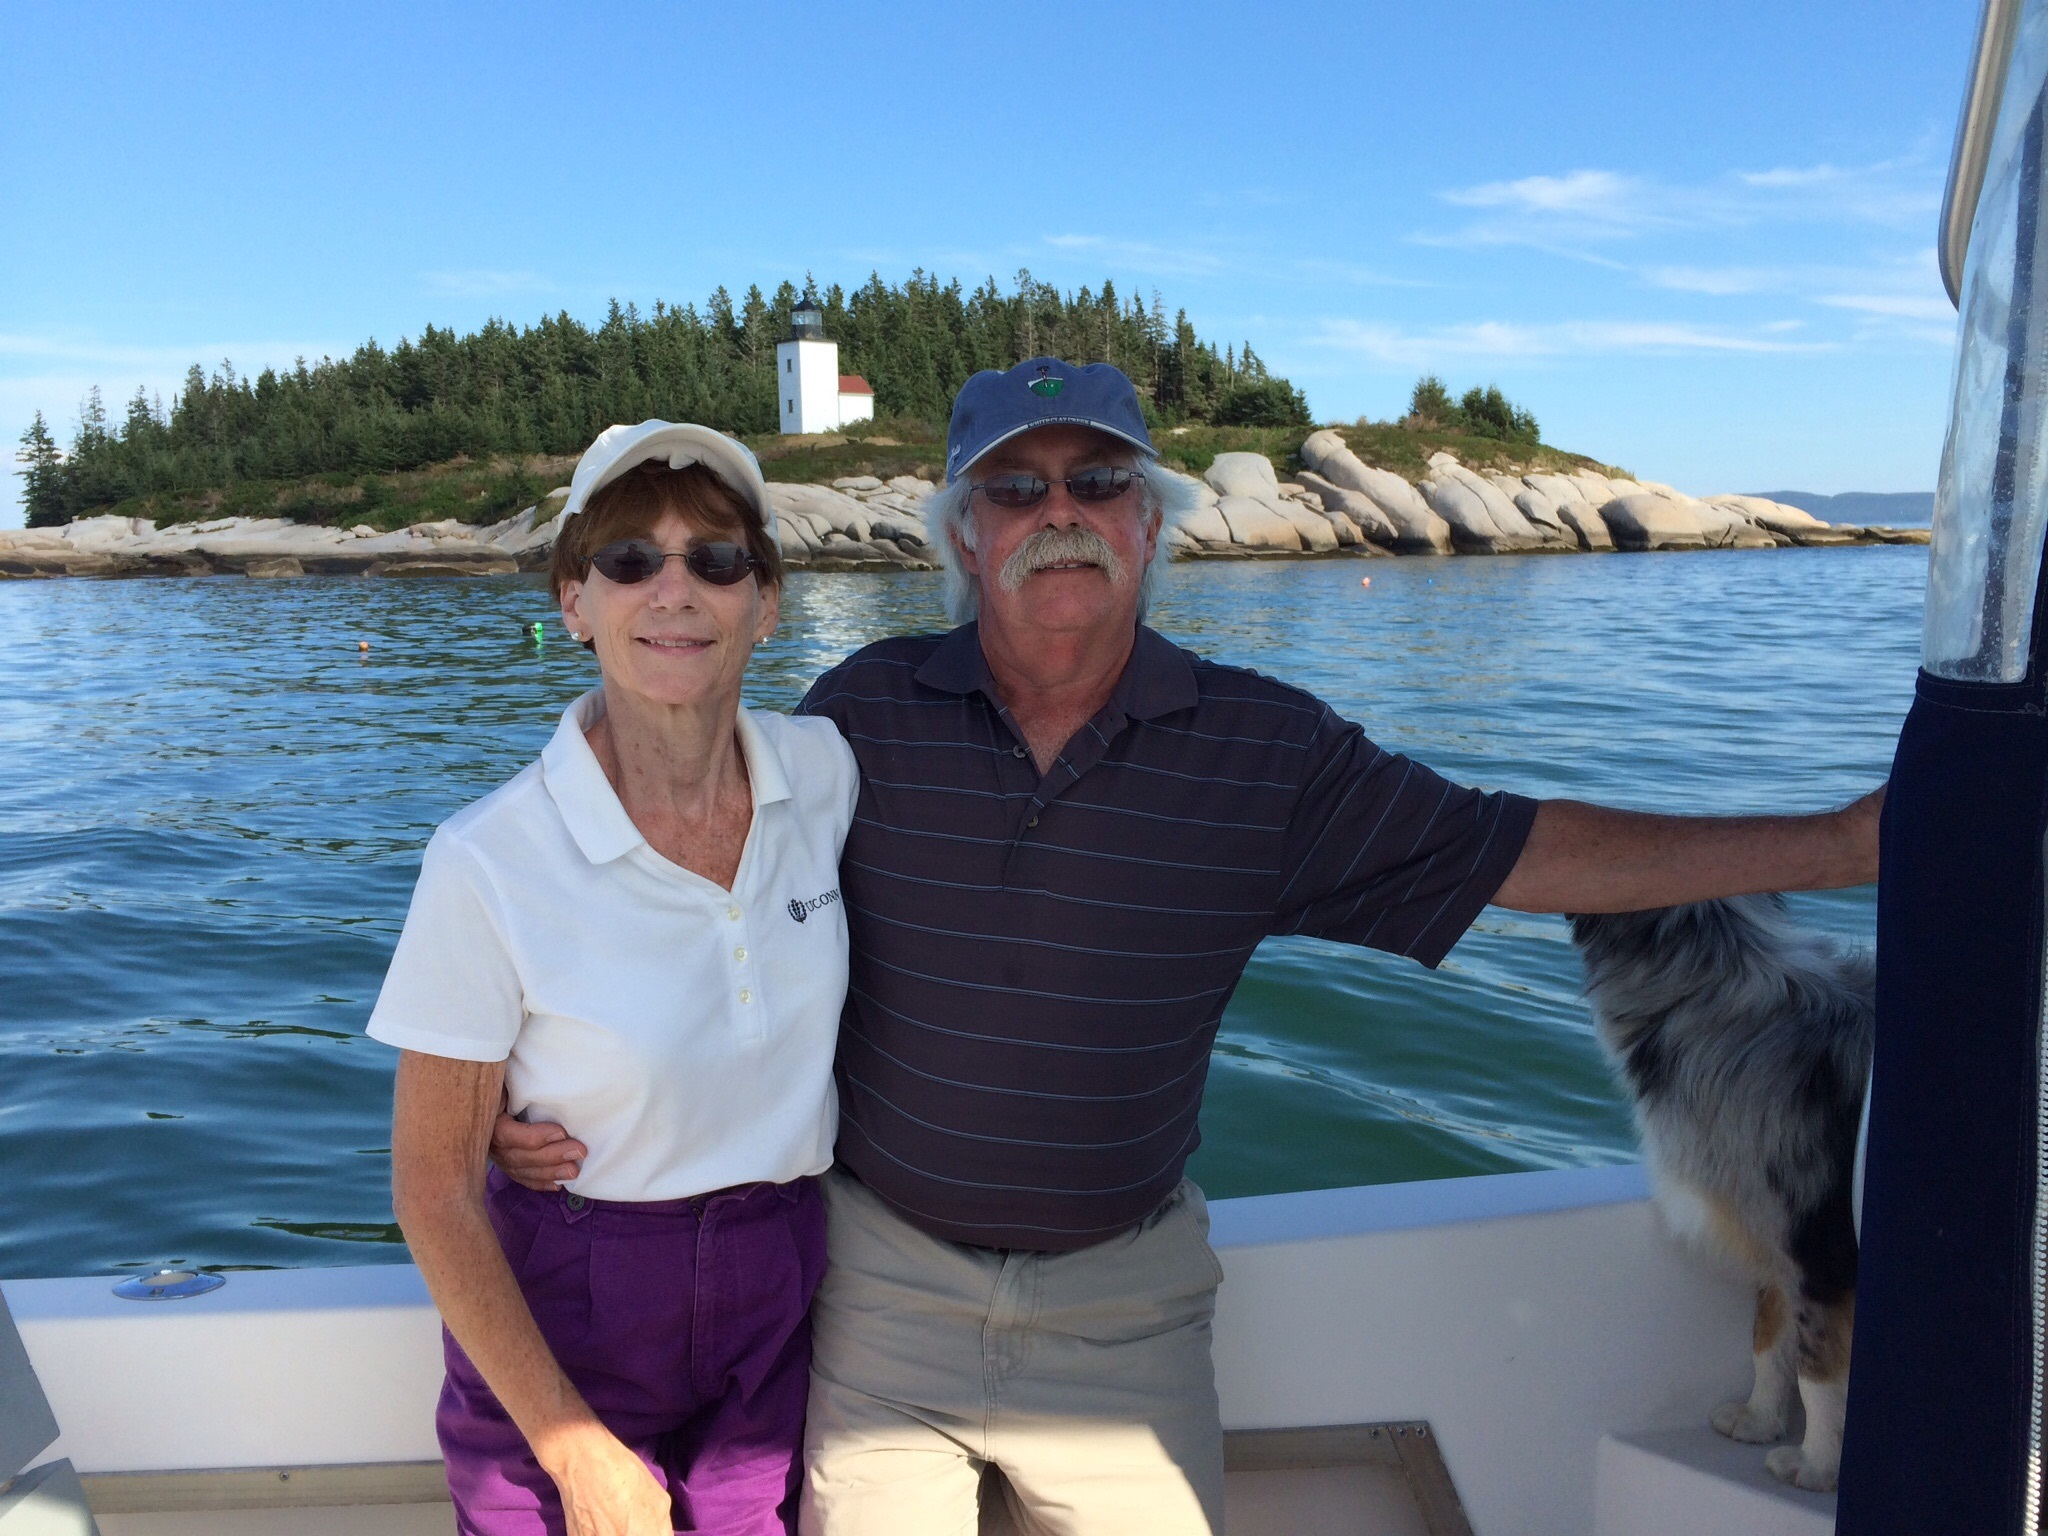 Ray Standish Class of 1965 with his wife Maureen on a boat in Maine with water and an island in the background